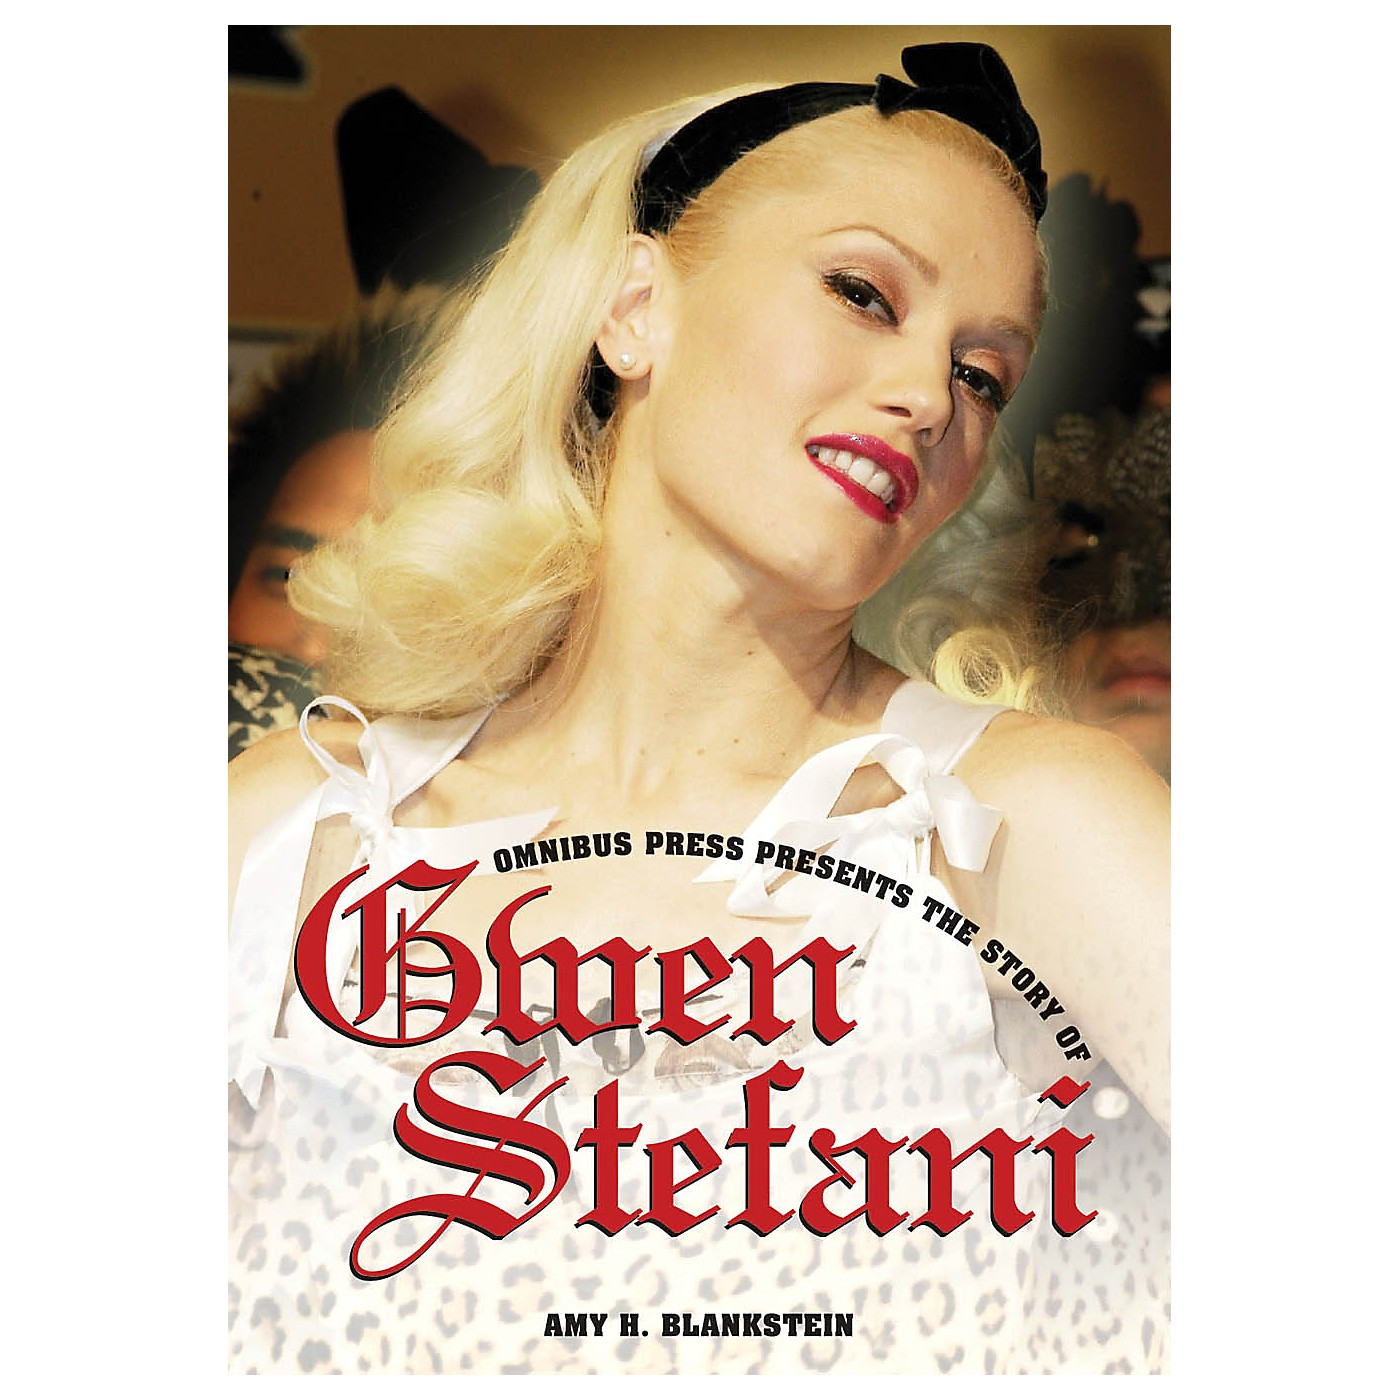 Omnibus Omnibus Presents: The Story of Gwen Stefani Omnibus Press Series Softcover thumbnail